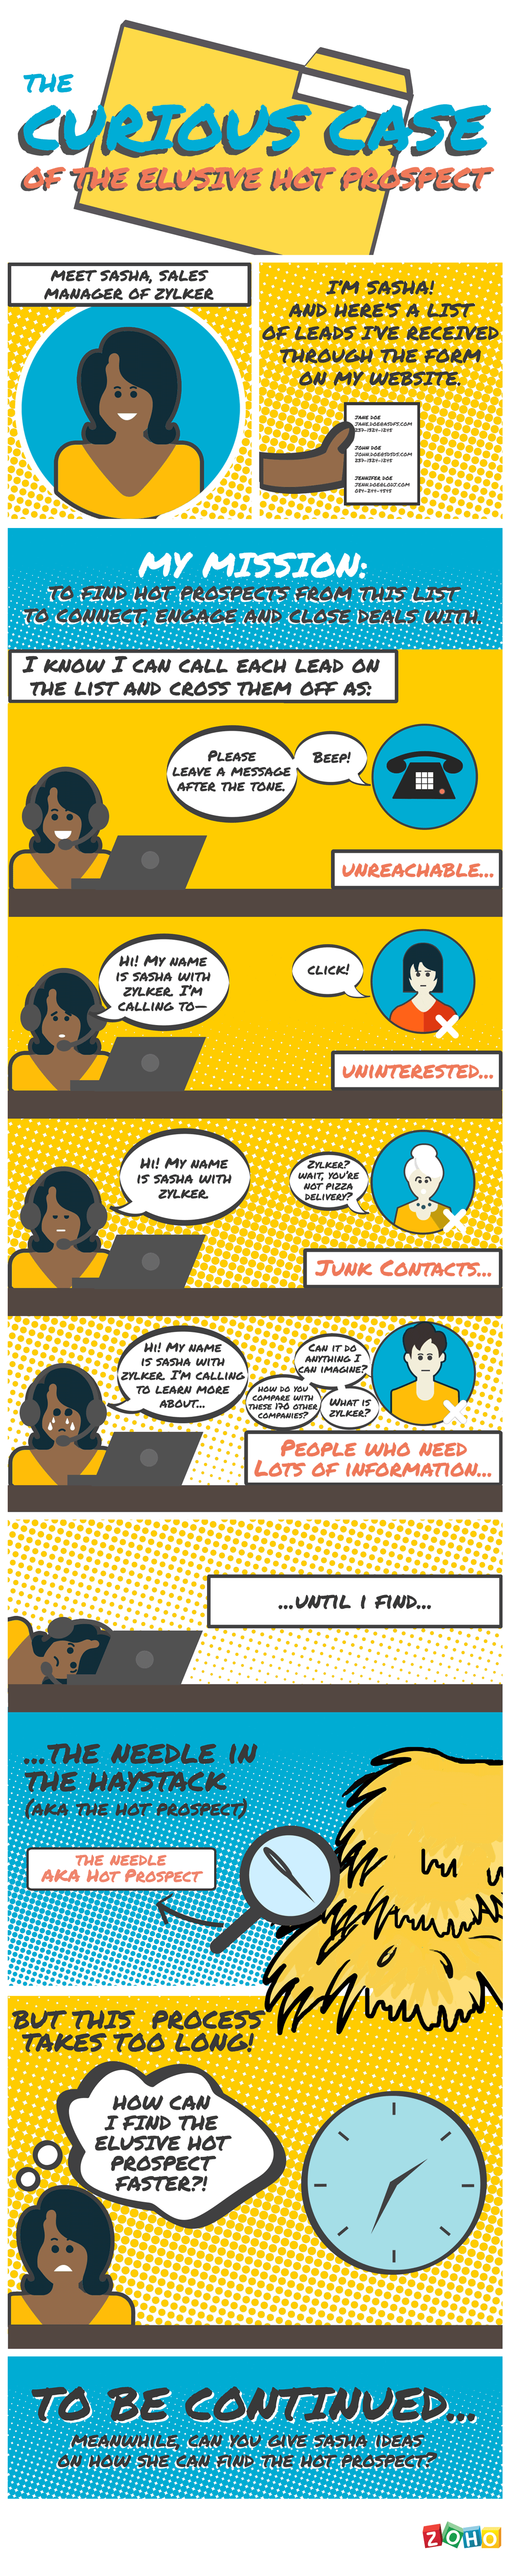 Zoho SalesIQ comic the curious case of the elusive hot prospect.